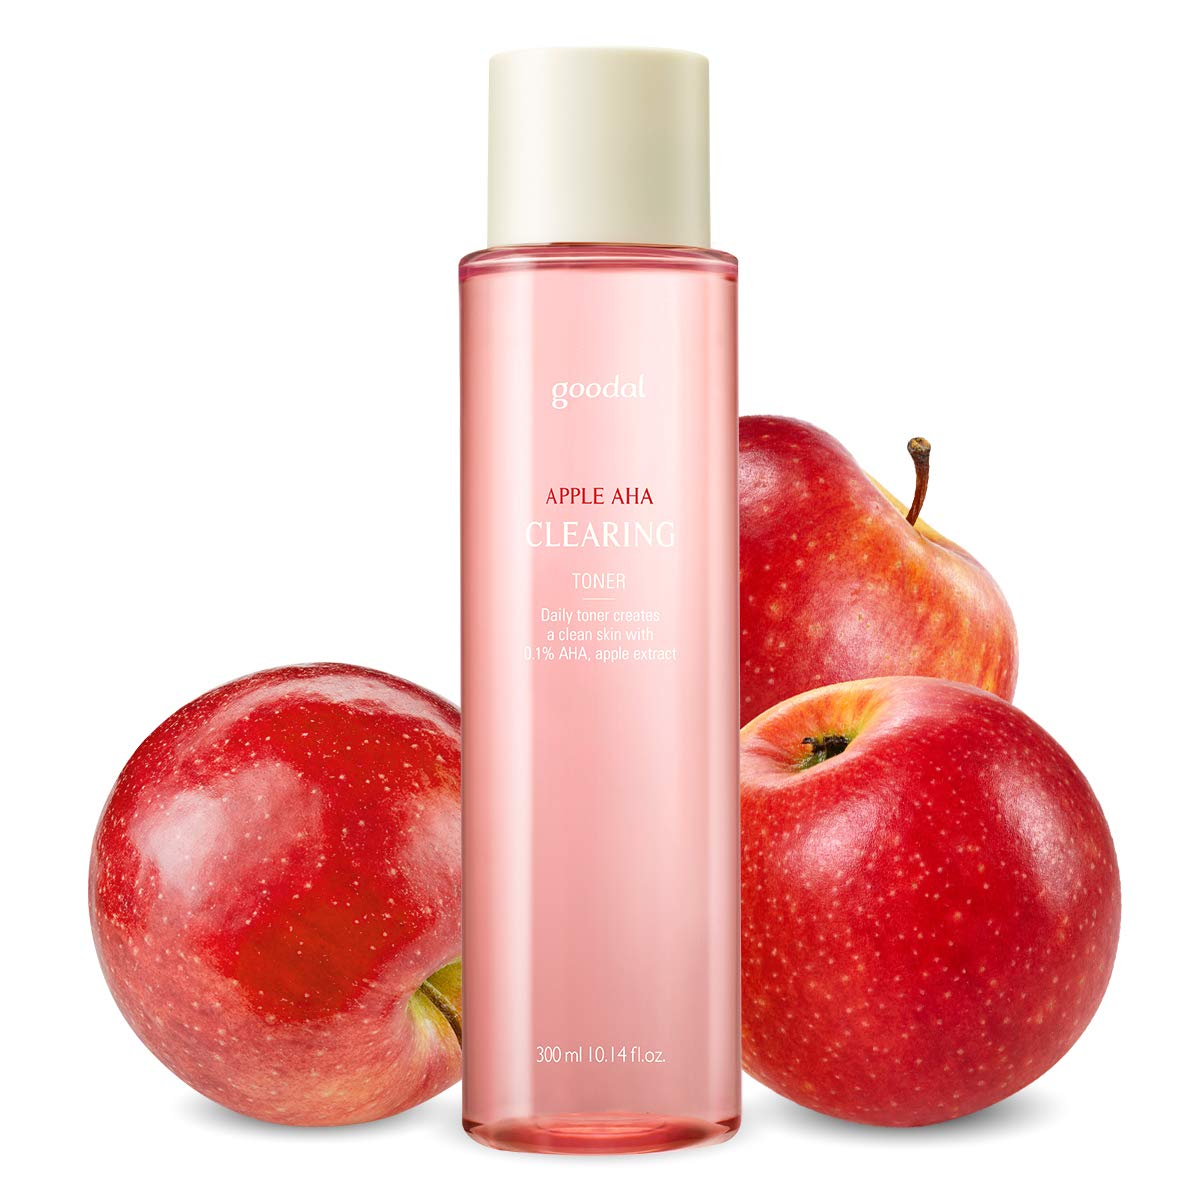 Goodal Apple AHA Clearing Toner for Sensitive Skin | Natural, Gentle, Clarifying, Peeling, Exfoliating, Toning, Pore-Tightening (10.14 fl oz)